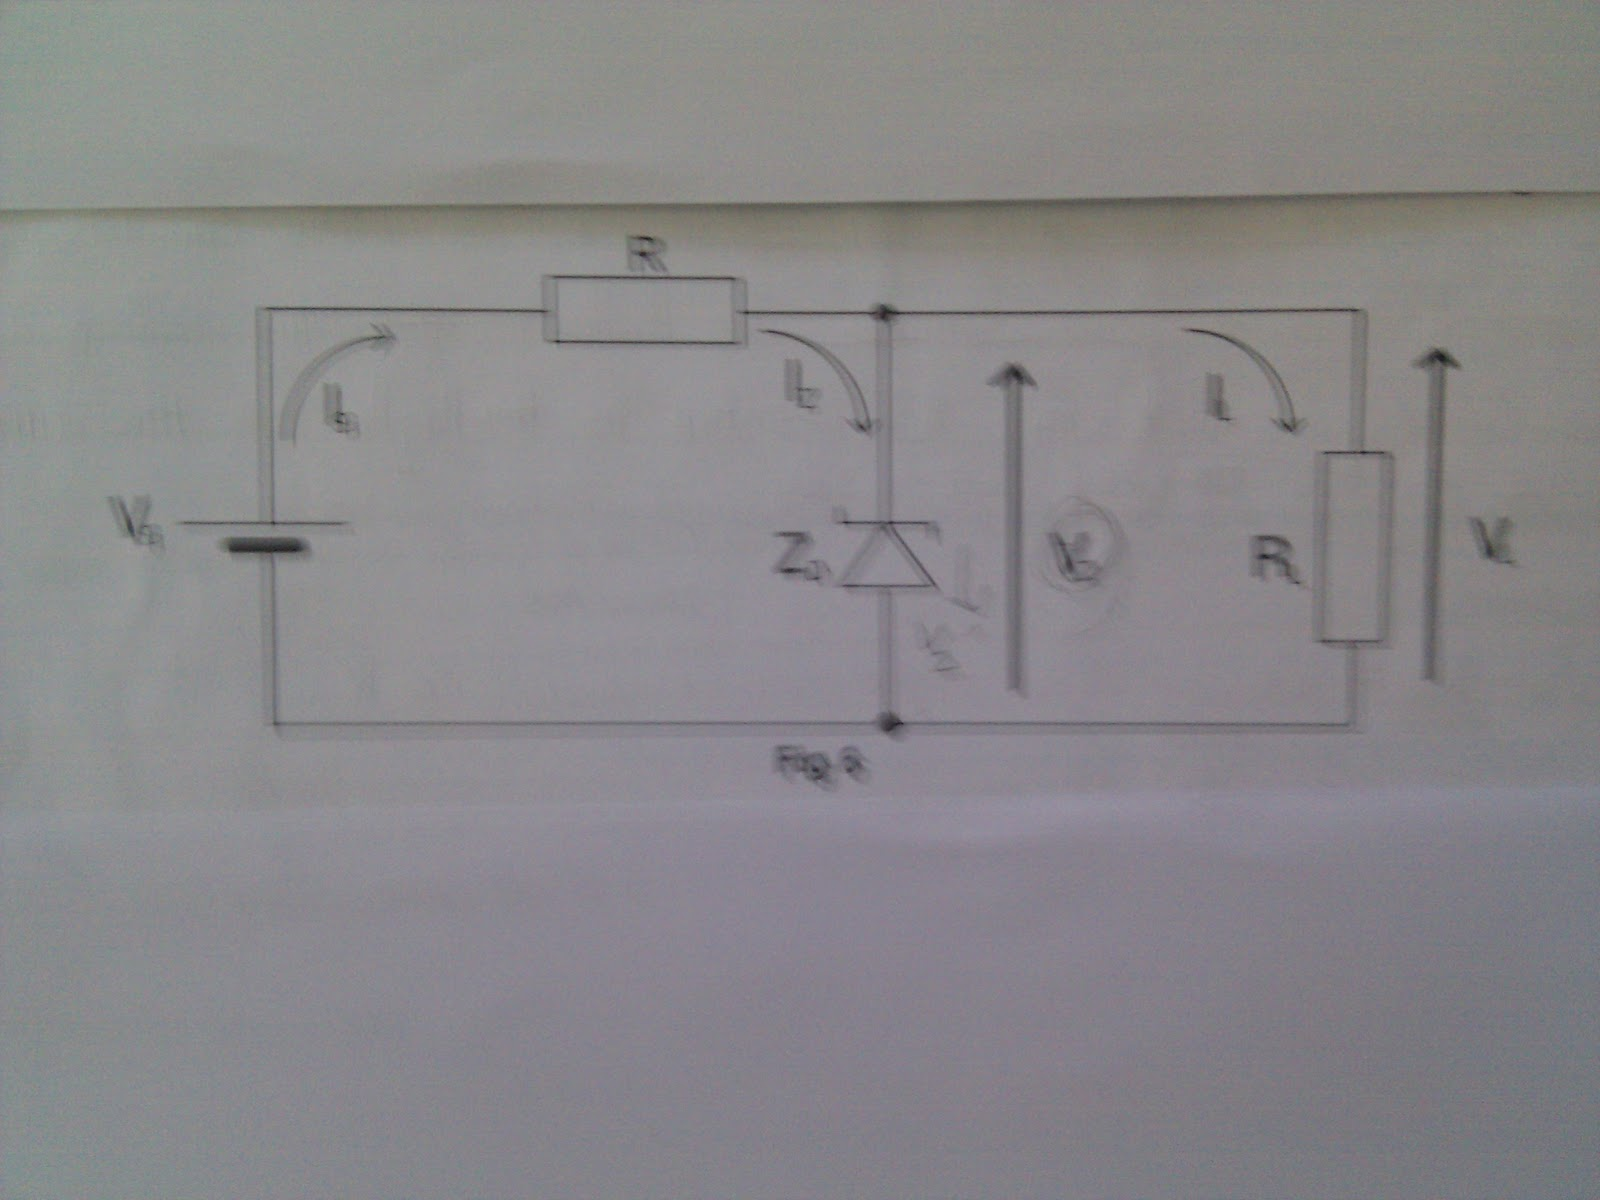 Automotive Electronics 4847 Practical Workbook Blog 1 Mohammed Experiment 6 Resistors In A Series Circuit Ii Components2 X 5v1 400mw Zener Diode Zd Exerciseobtain Breadboardsuitable Components From Your Tutor And Build The Following